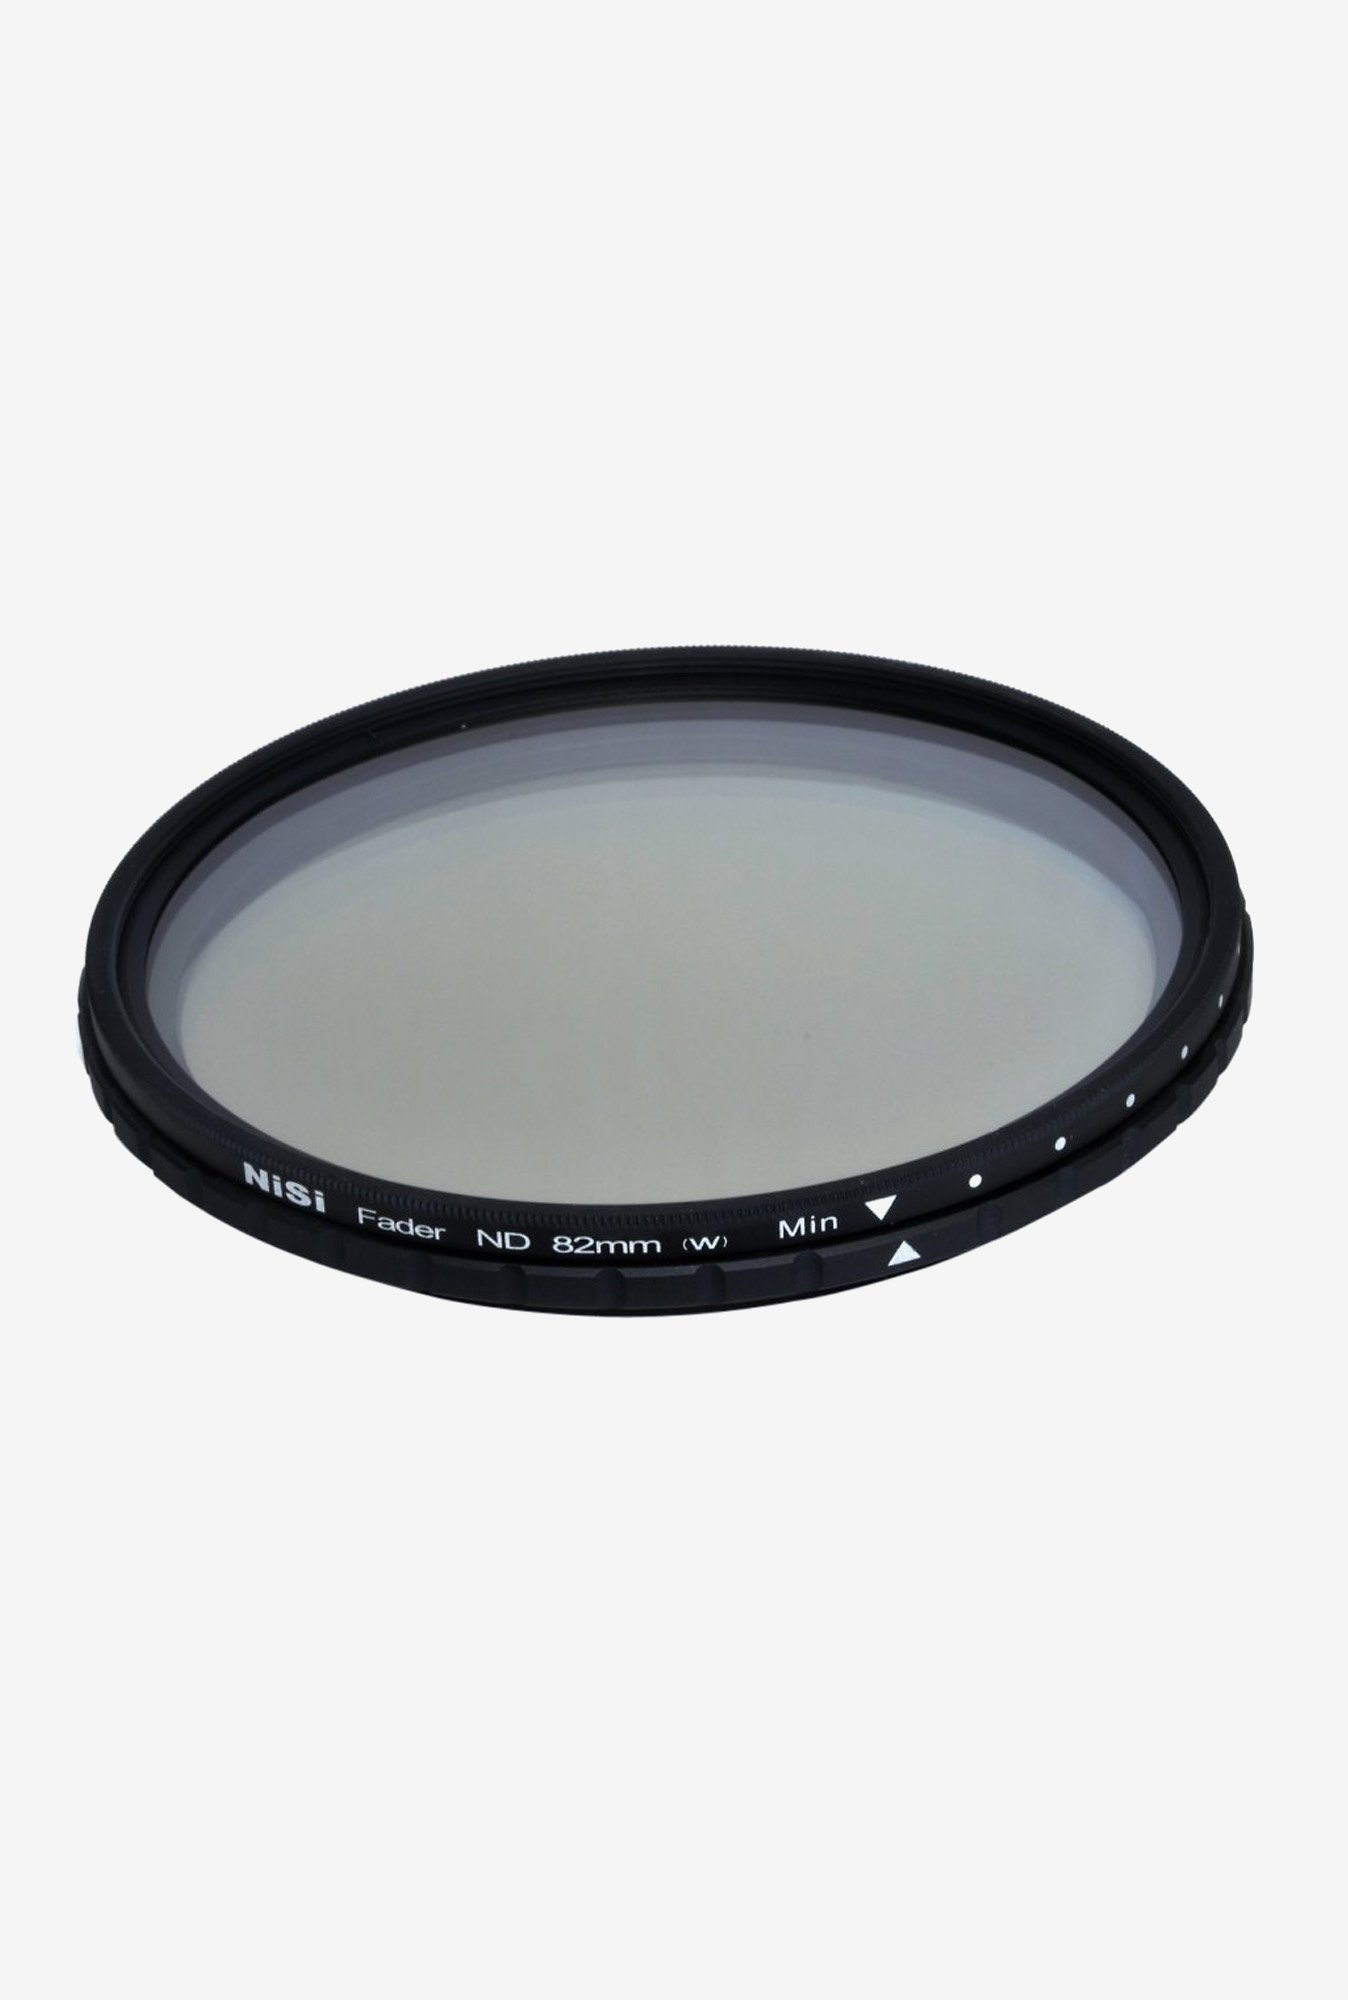 Nisi ND 2-400 82mm Fader Filter Black